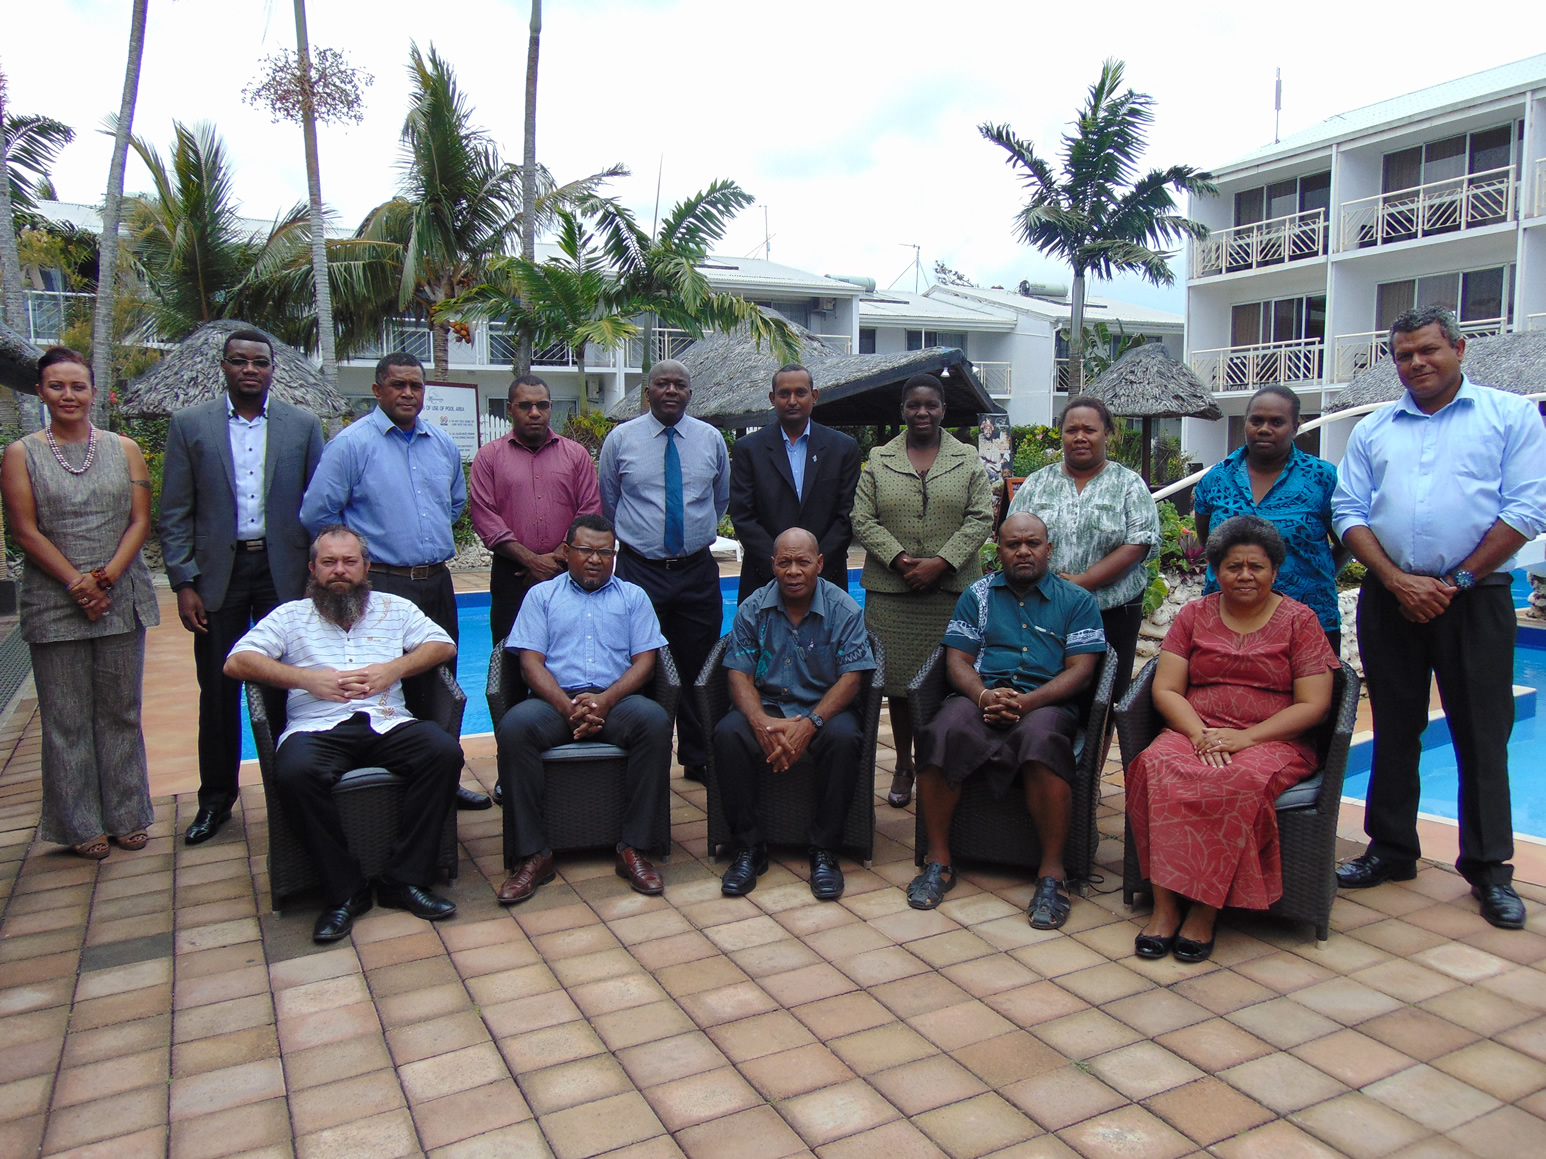 15 - 16 Oct 2015 - Trade Working Group - Port Vila 16